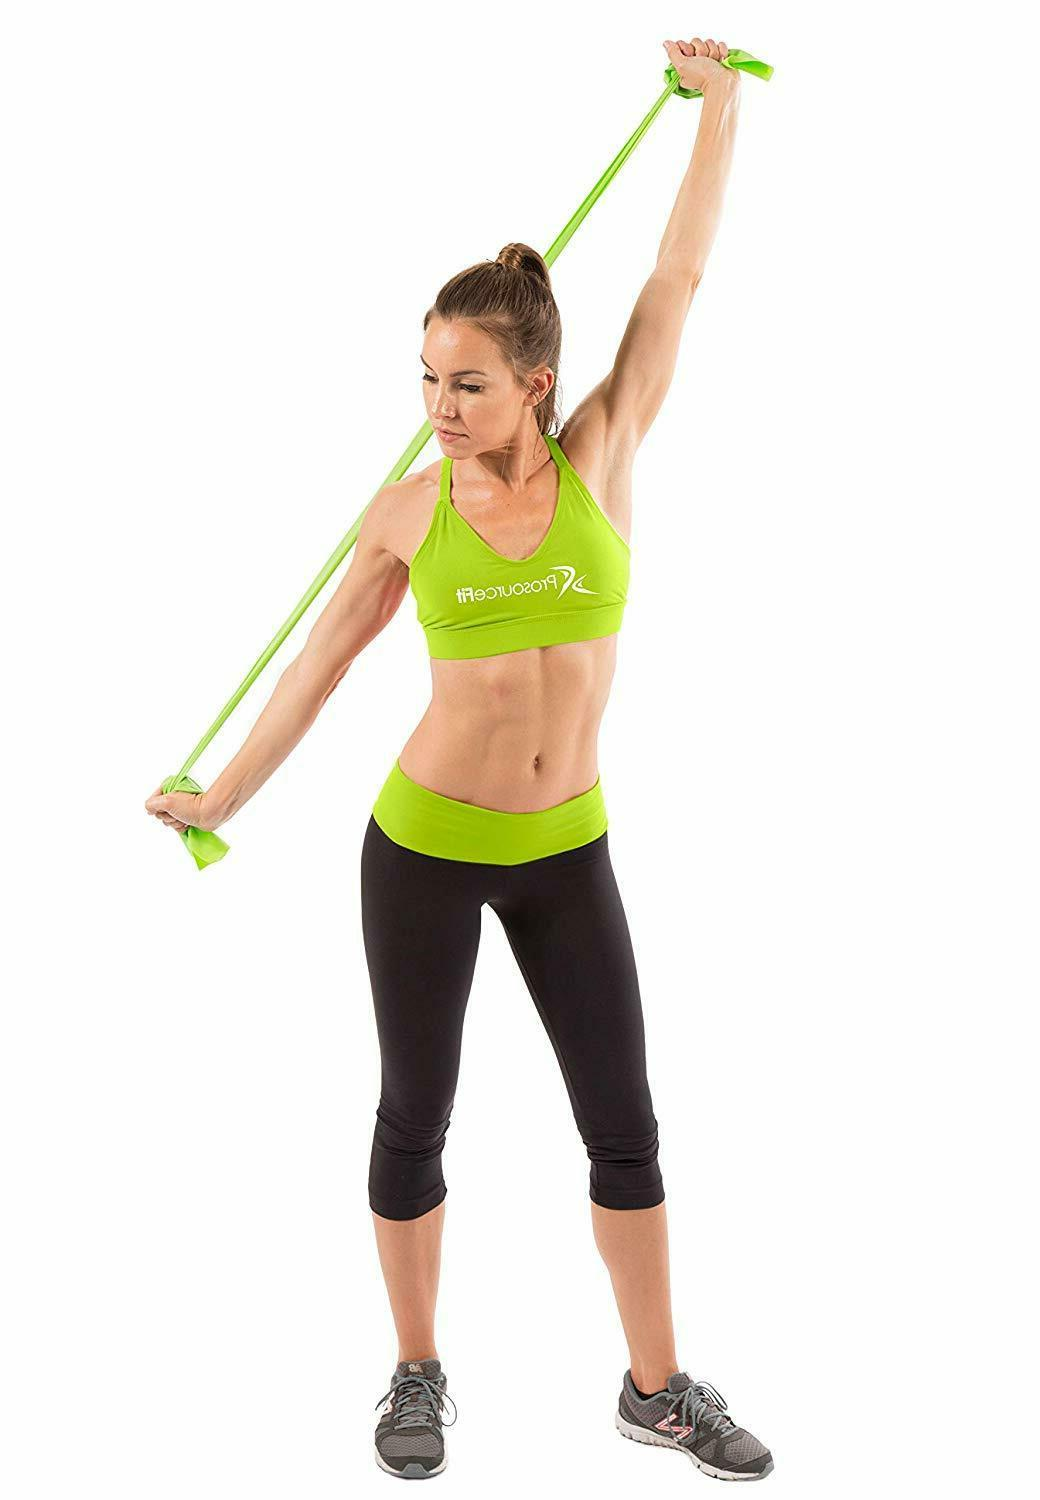 3Pc Yoga & Pilates Exercise with Anchor